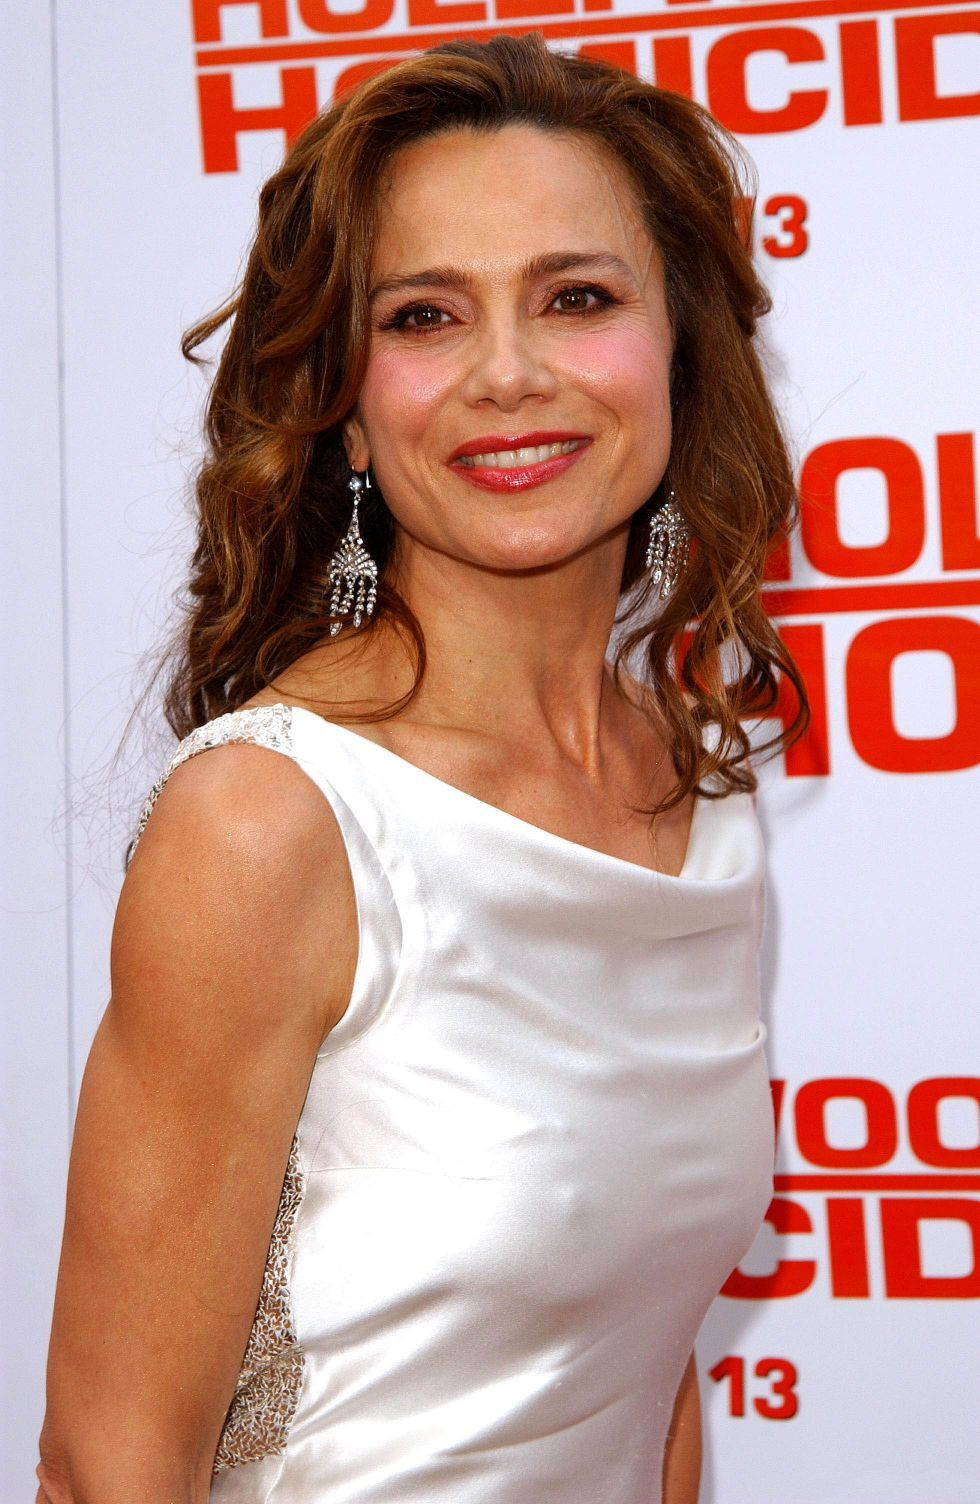 Celebrites Lena Olin naked (56 photo), Sexy, Is a cute, Twitter, underwear 2020